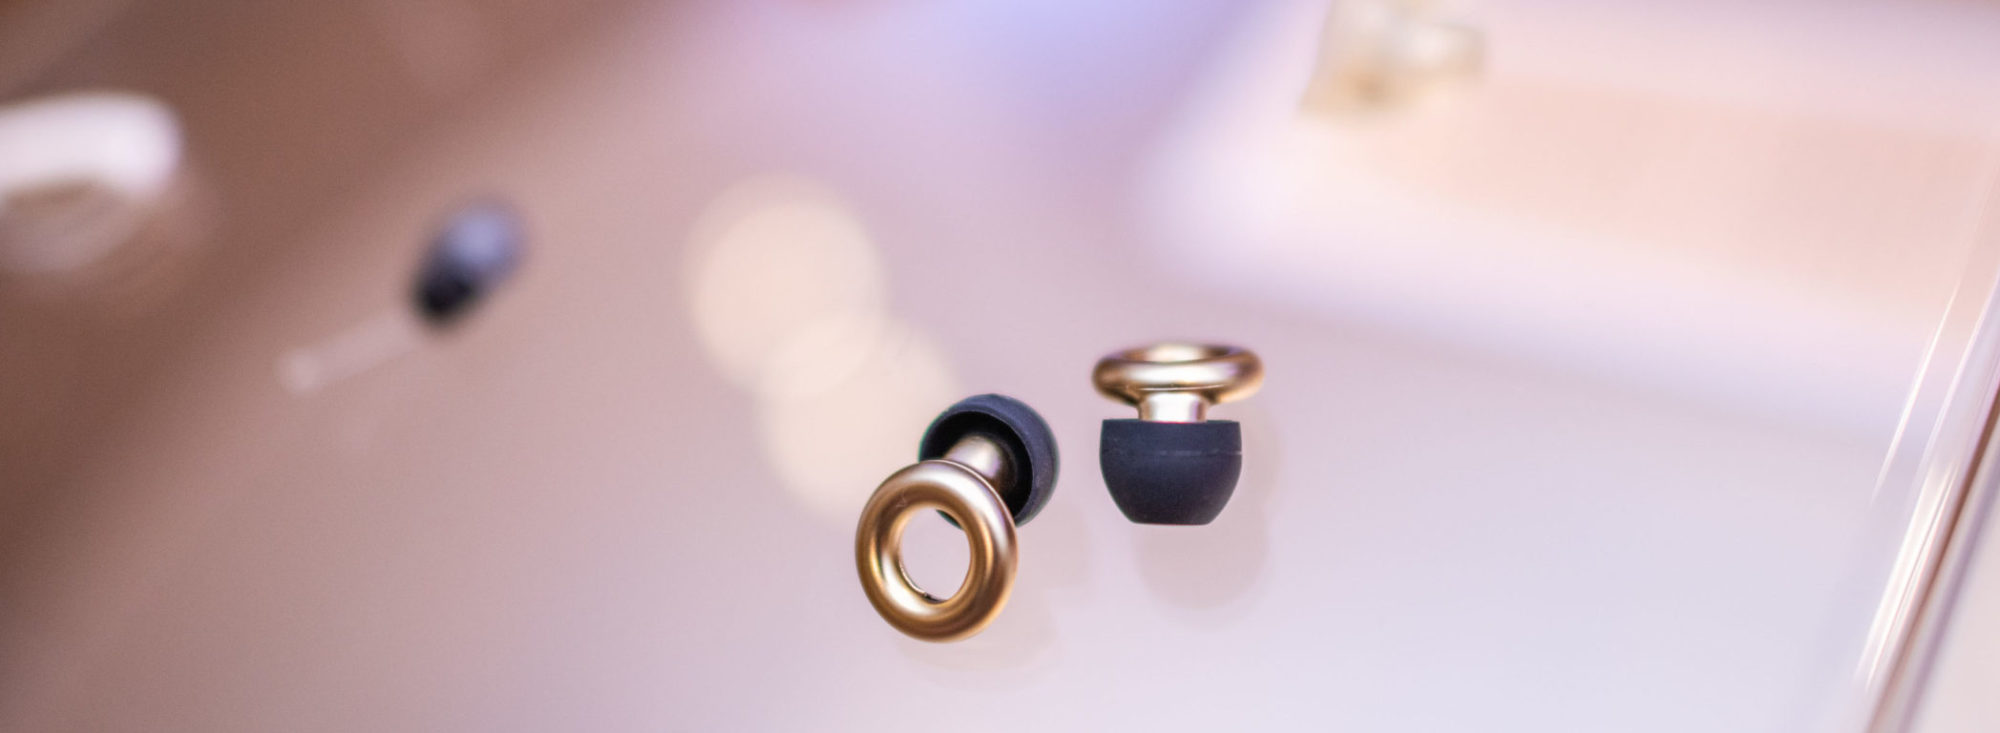 A display of various hearing aids and devices